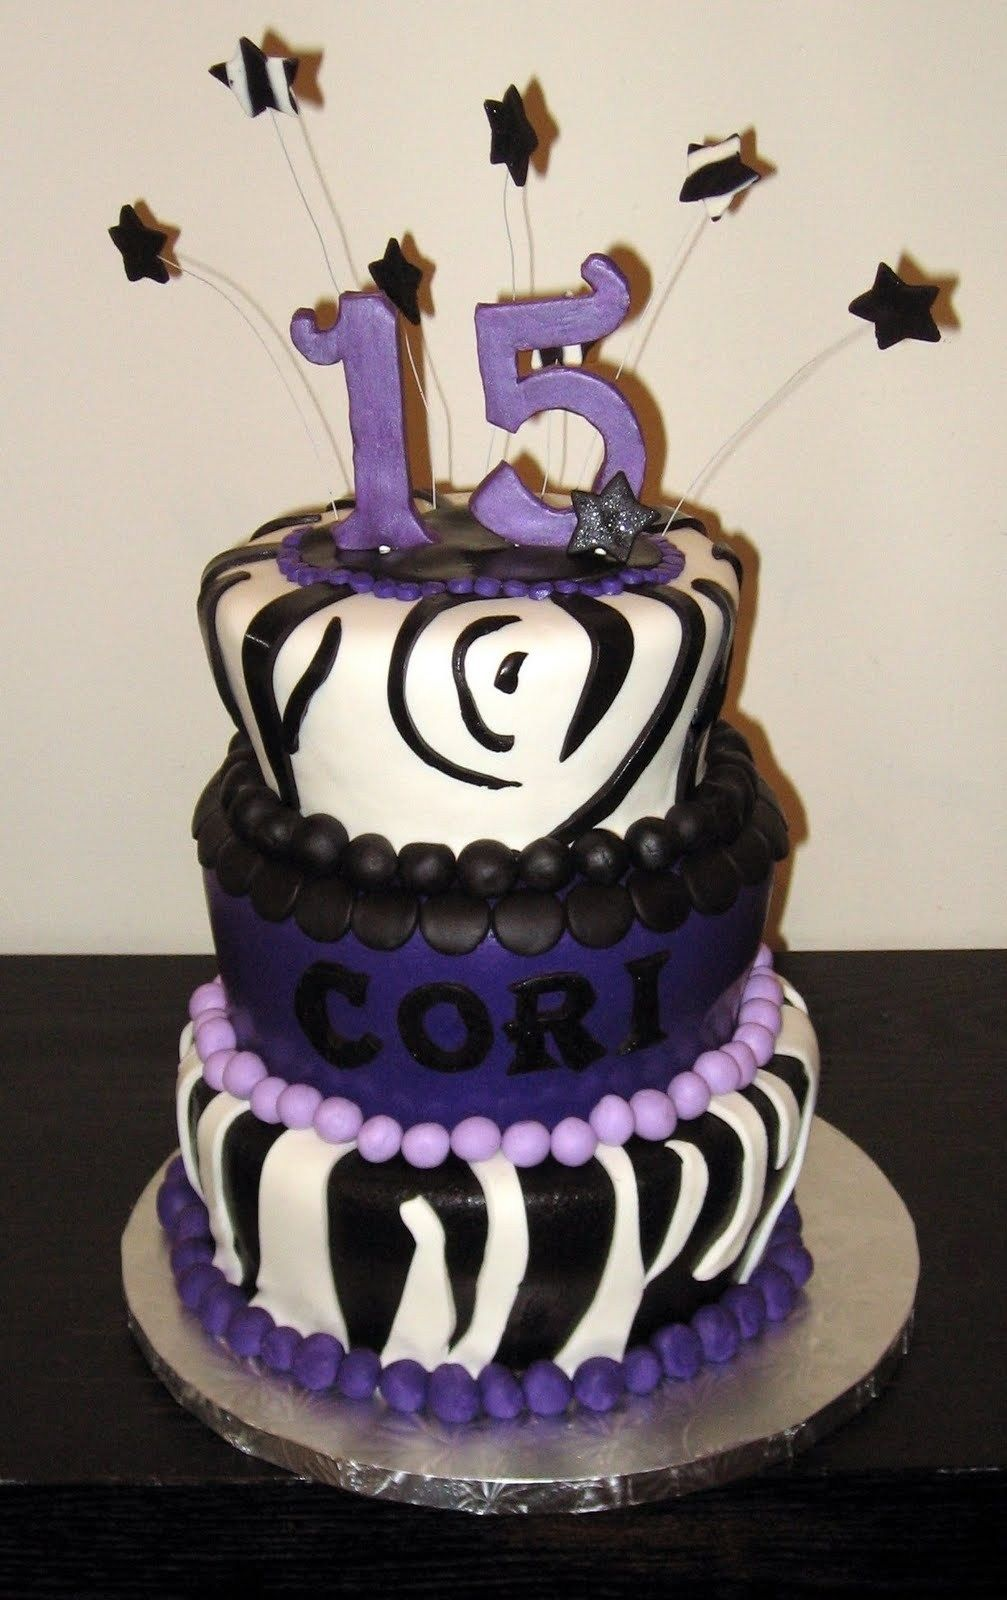 23 Creative Photo Of Birthday Cakes For 15 Years Old Girl With